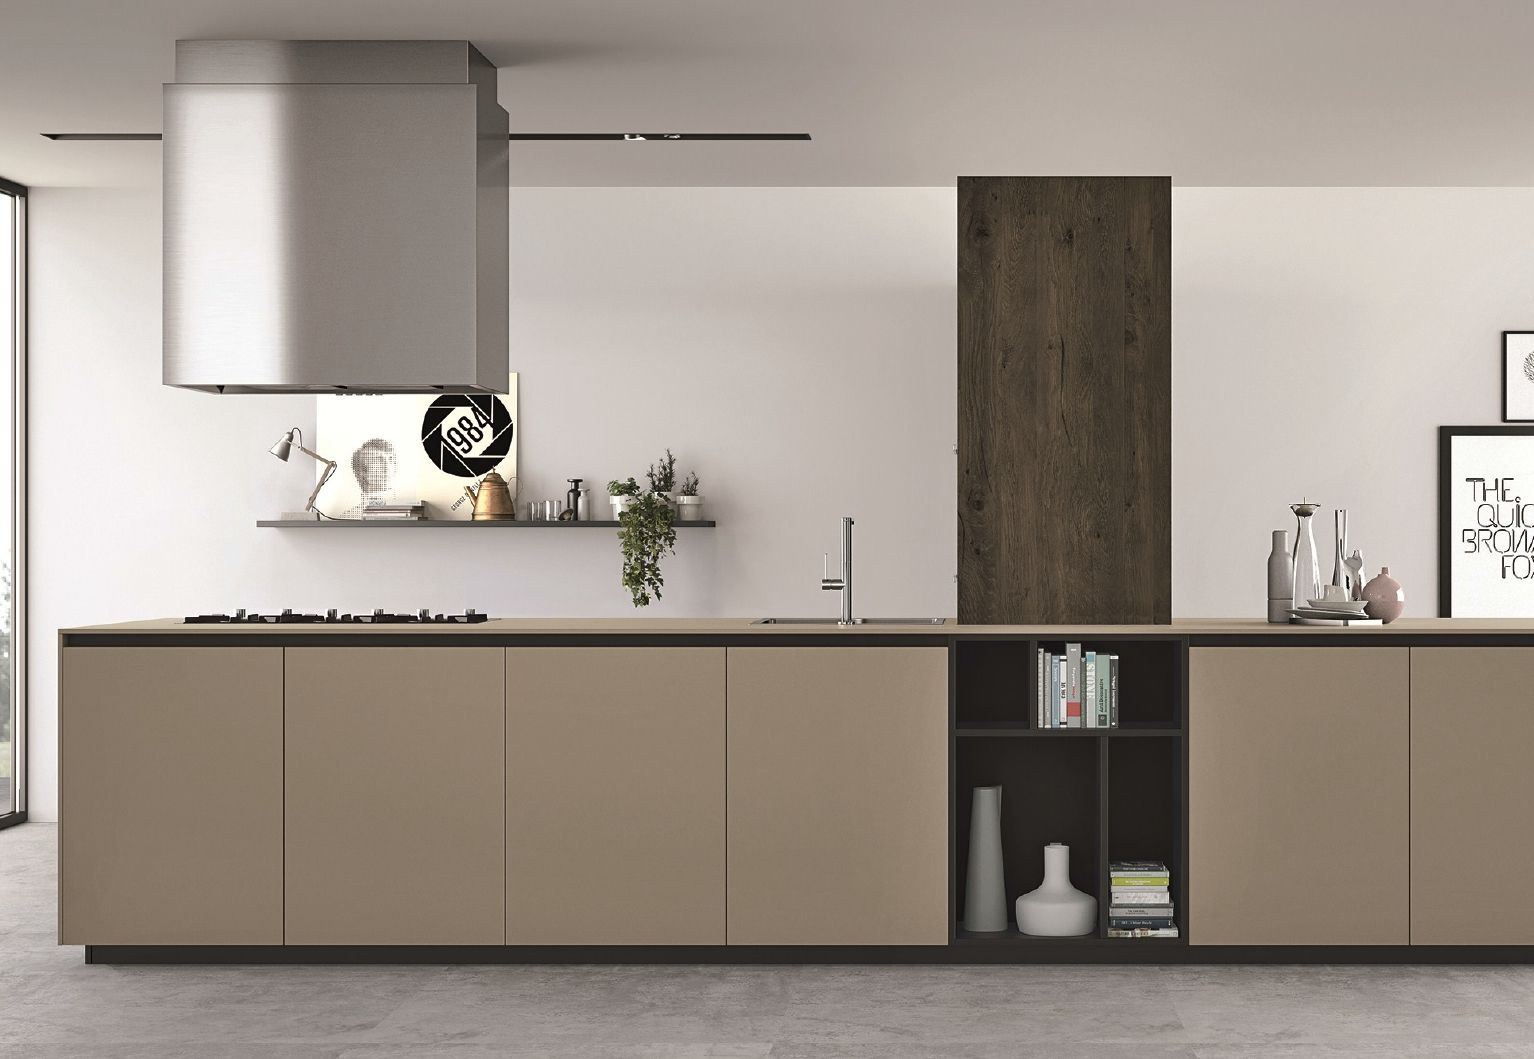 Kitchen top and doors made of fenix ntm beige luxor. courtesy of